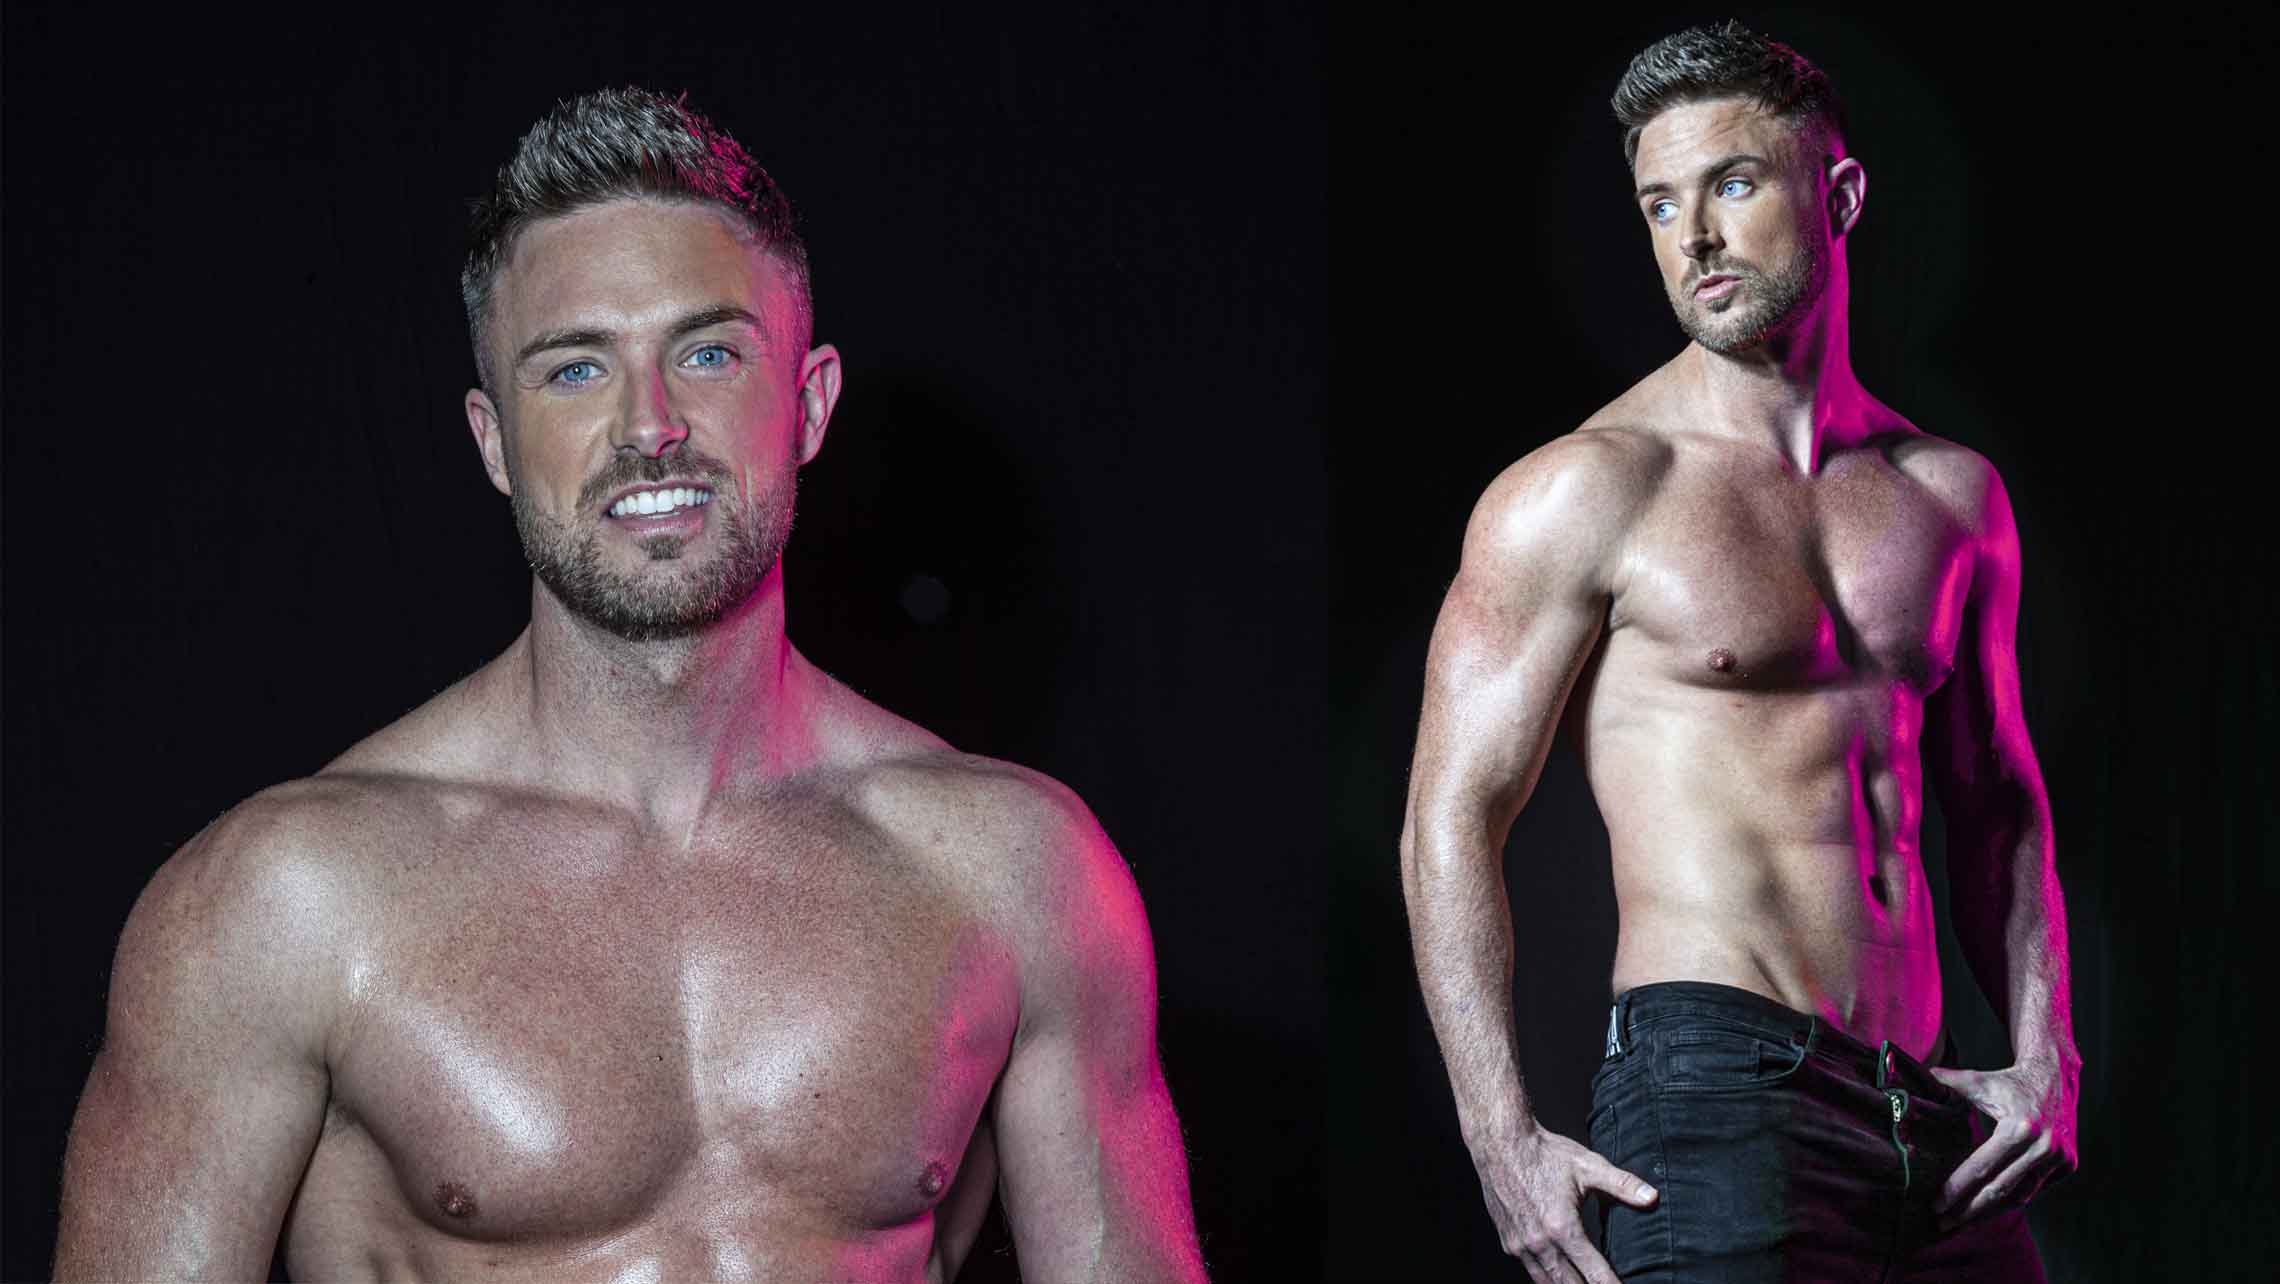 male strip show blog | Who is Celebs Go Dating star and Dreamboy Shane Finlayson?